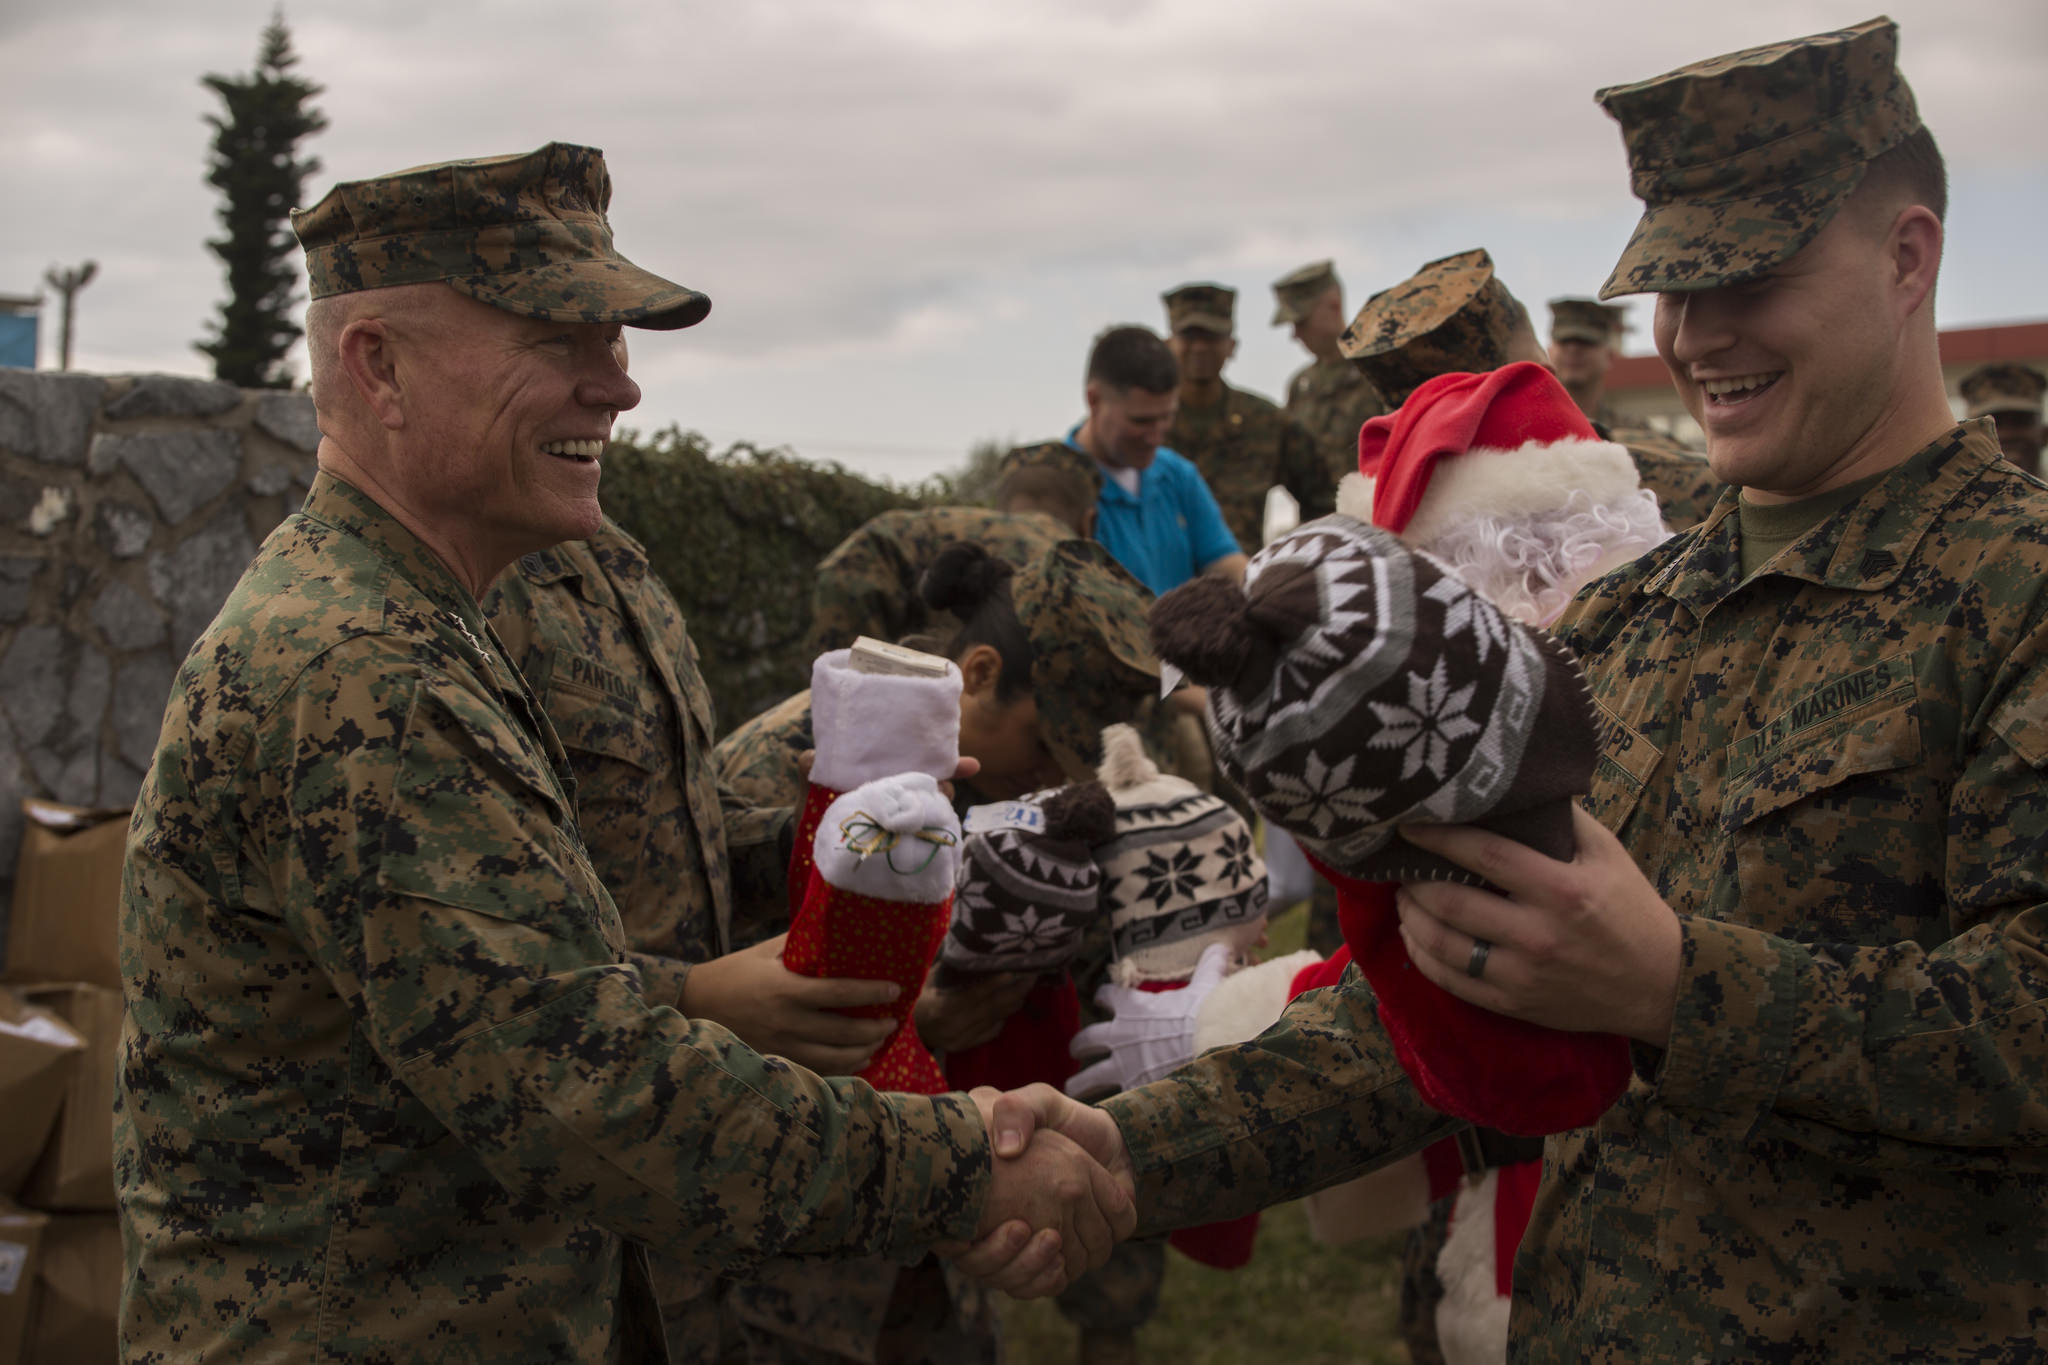 Lt. Gen. Lawrence D. Nicholson, the commanding general of III Marine Expeditionary Force, hands out Christmas stockings to Marines at Camp Courtney, Okinawa, Japan, Dec. 22, 2017. (Cpl. Nelson Duenas/Marine Corps)